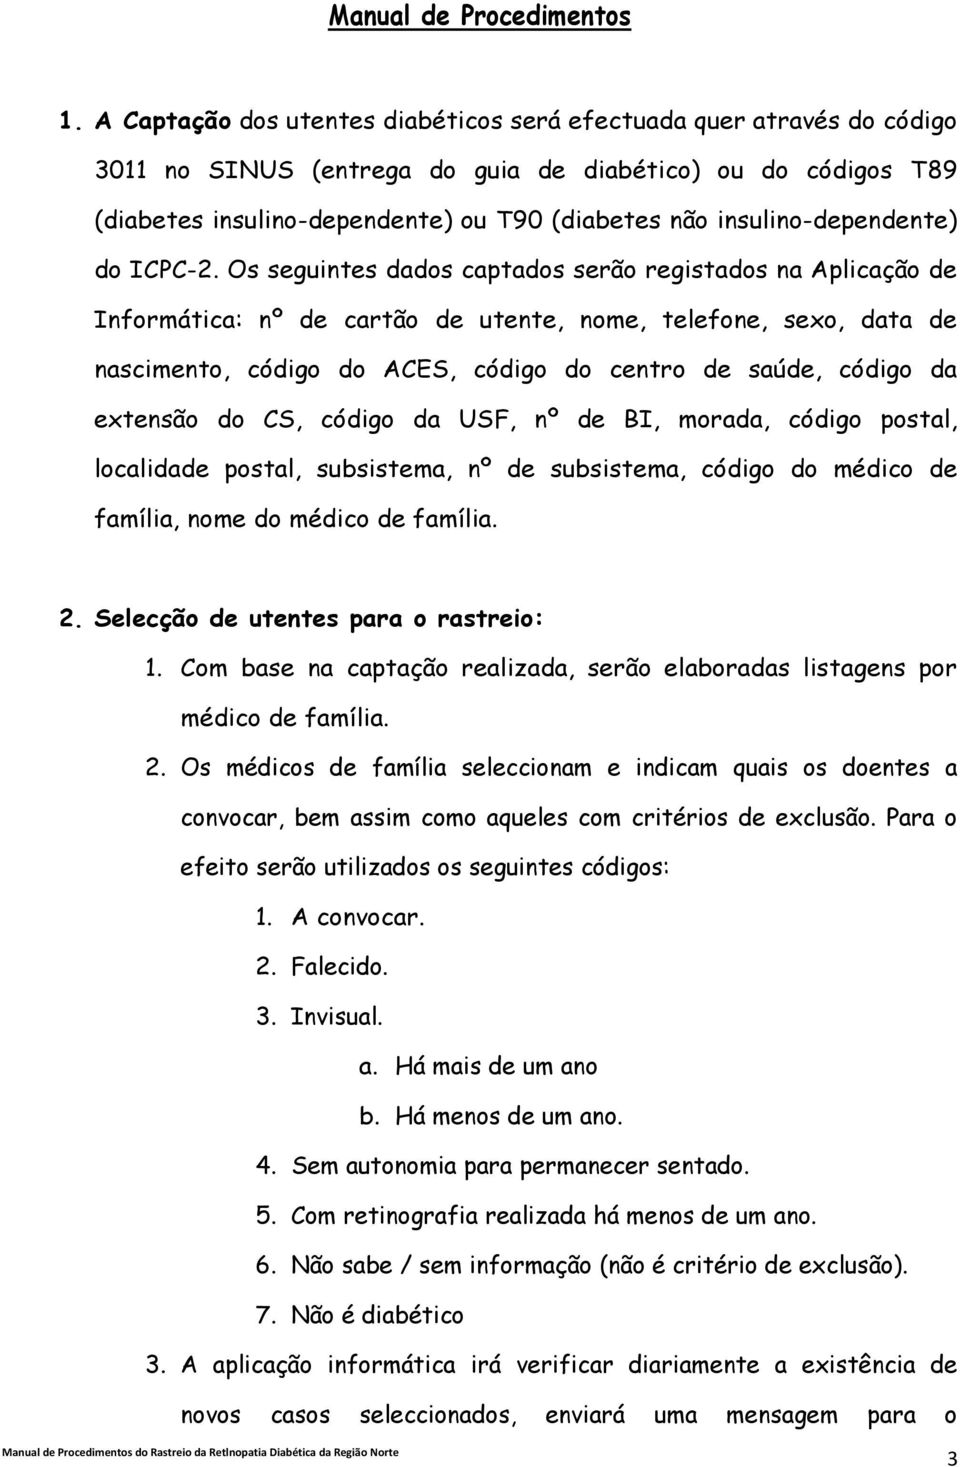 insulino-dependente) do ICPC-2.